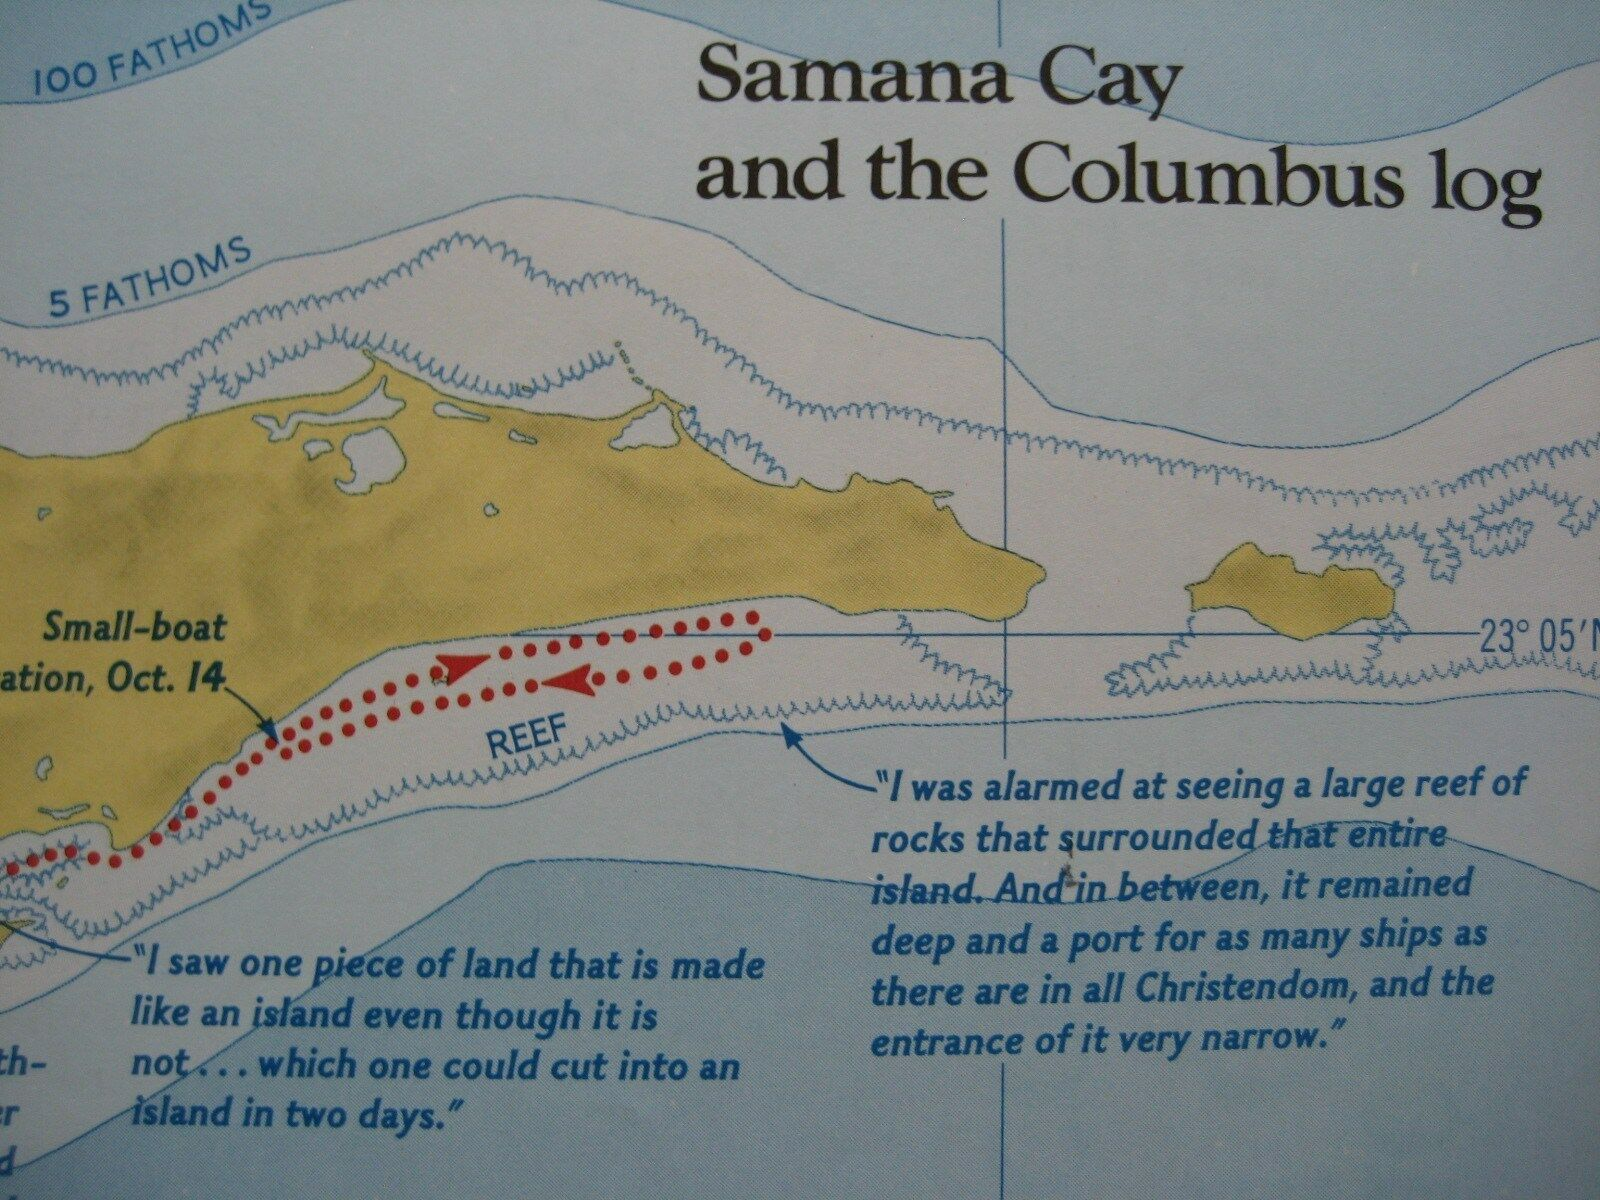 Chiristopher columbus landfall controversy map samana cay v san condition this map is in excellent condition bright and clean with no marks rips or tears we are pleased to offer it with our unconditional sciox Gallery